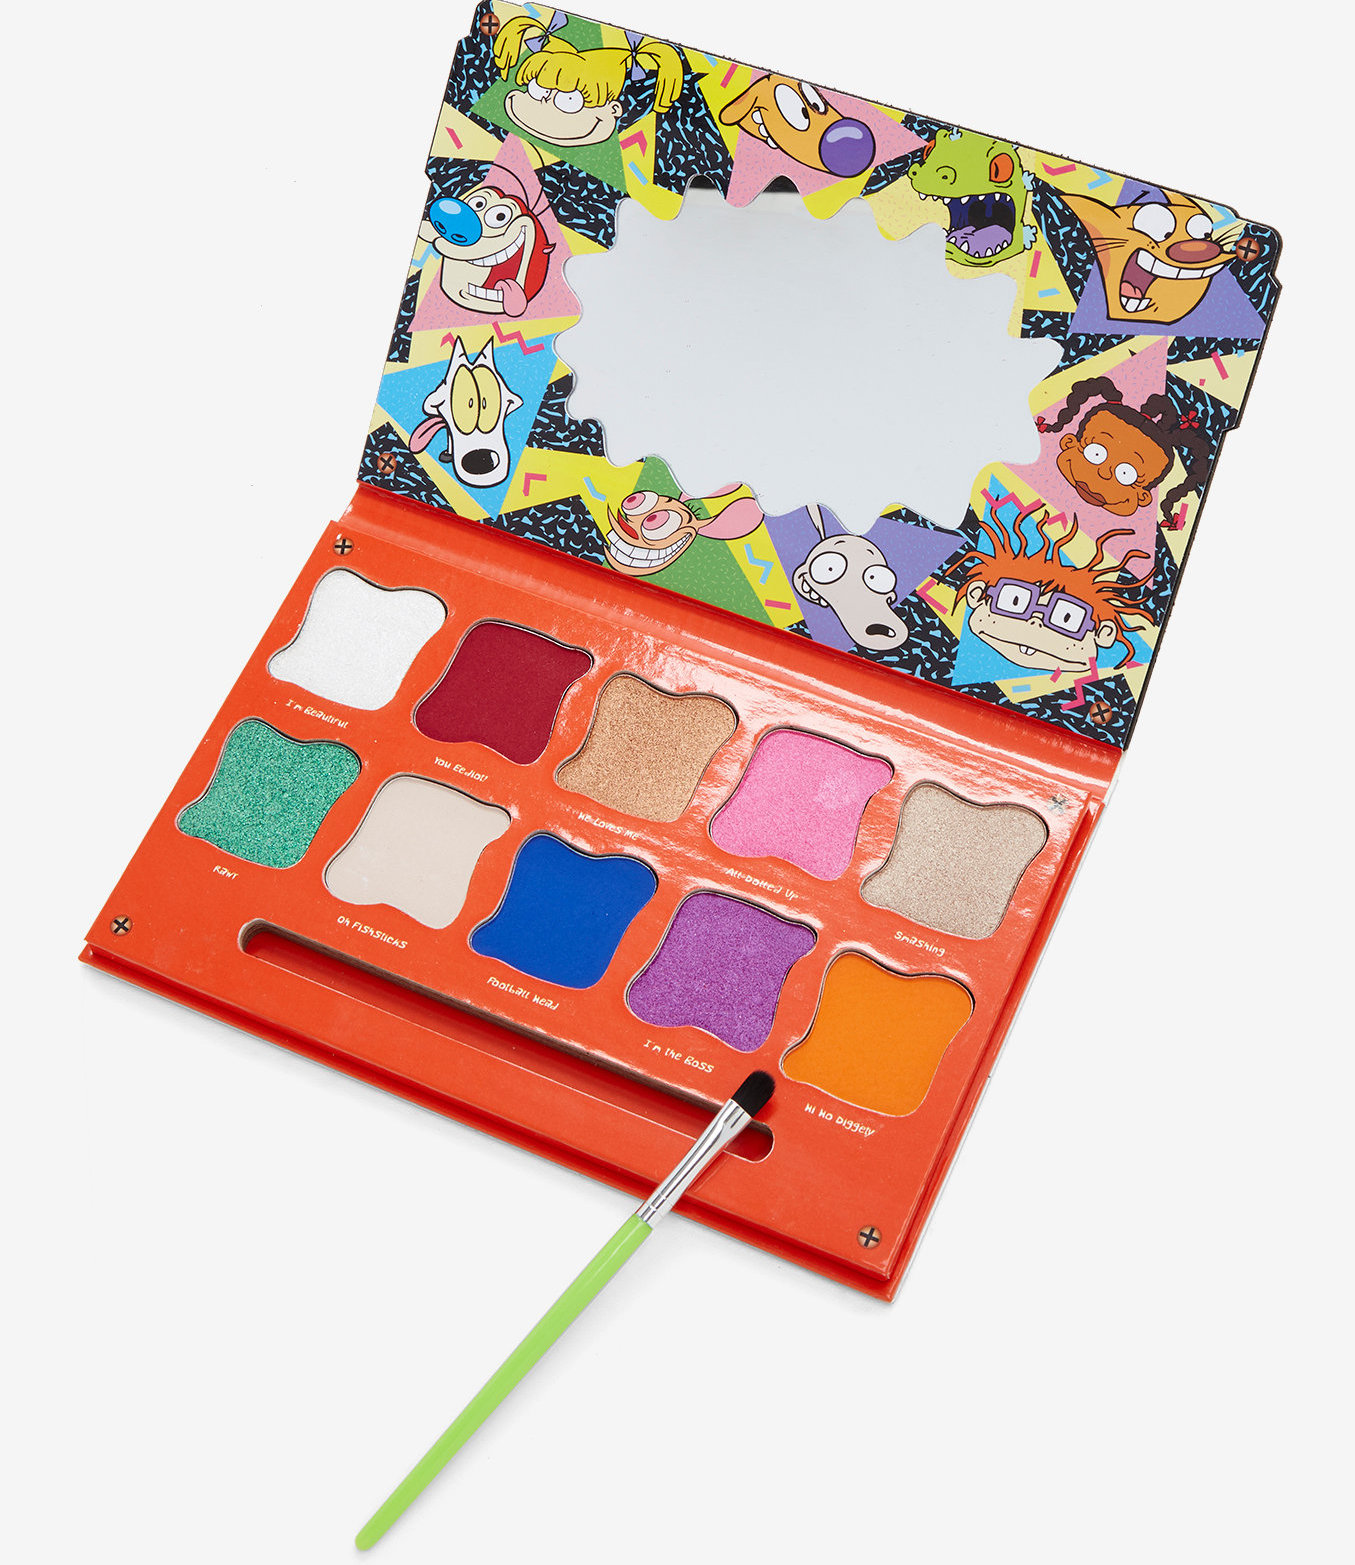 A Nickelodeon Themed Eyeshadow Palette Is Available At Hot Topic